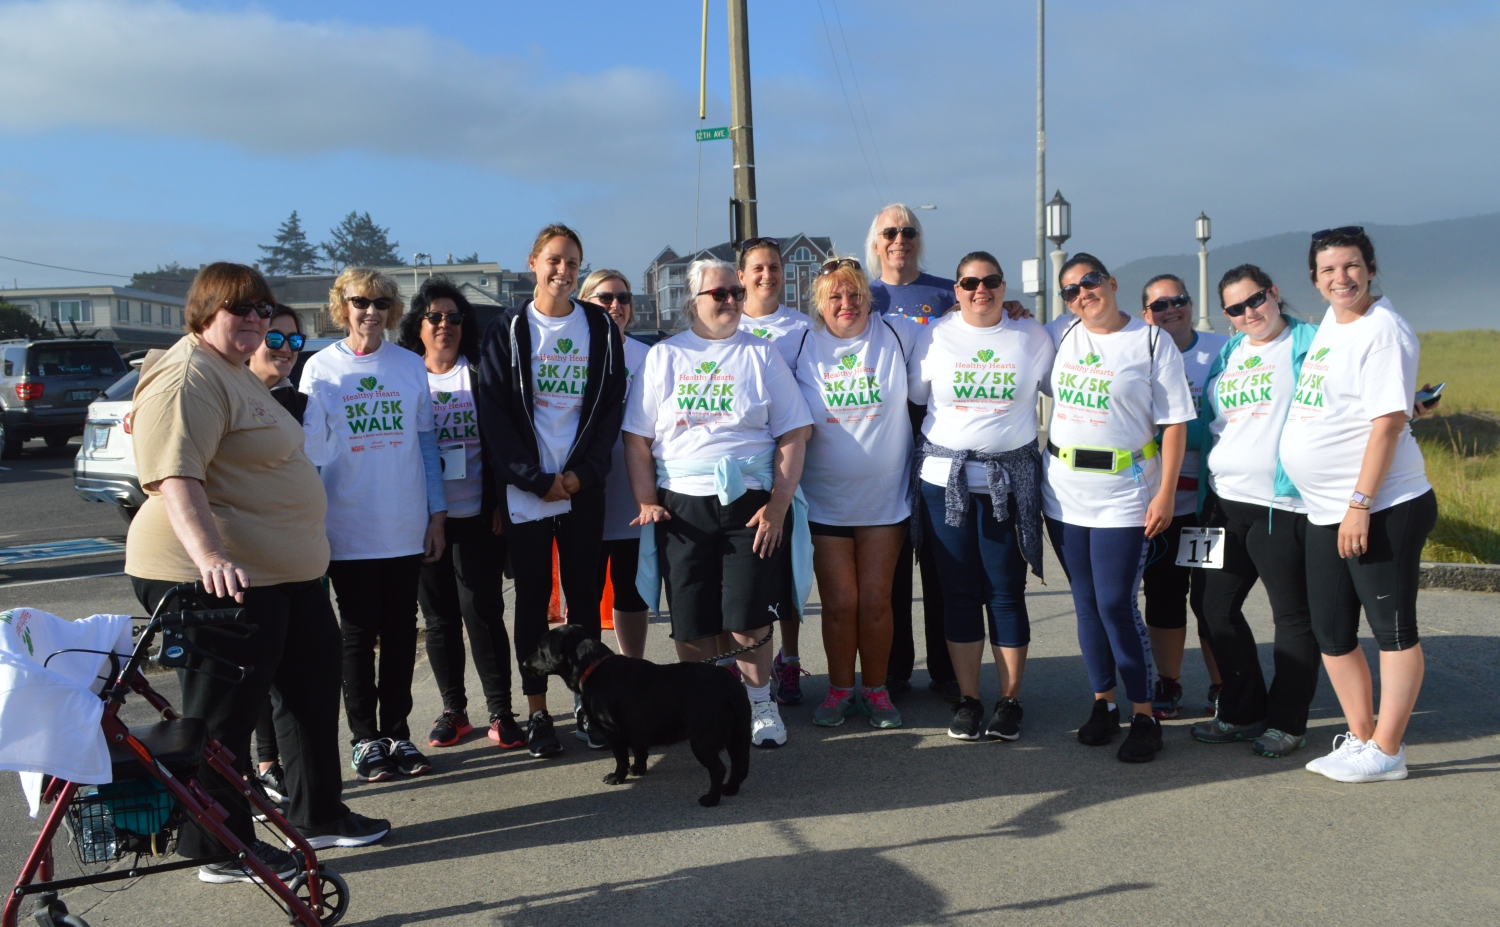 Group photo from the Healthy Hearts walk in Seaside